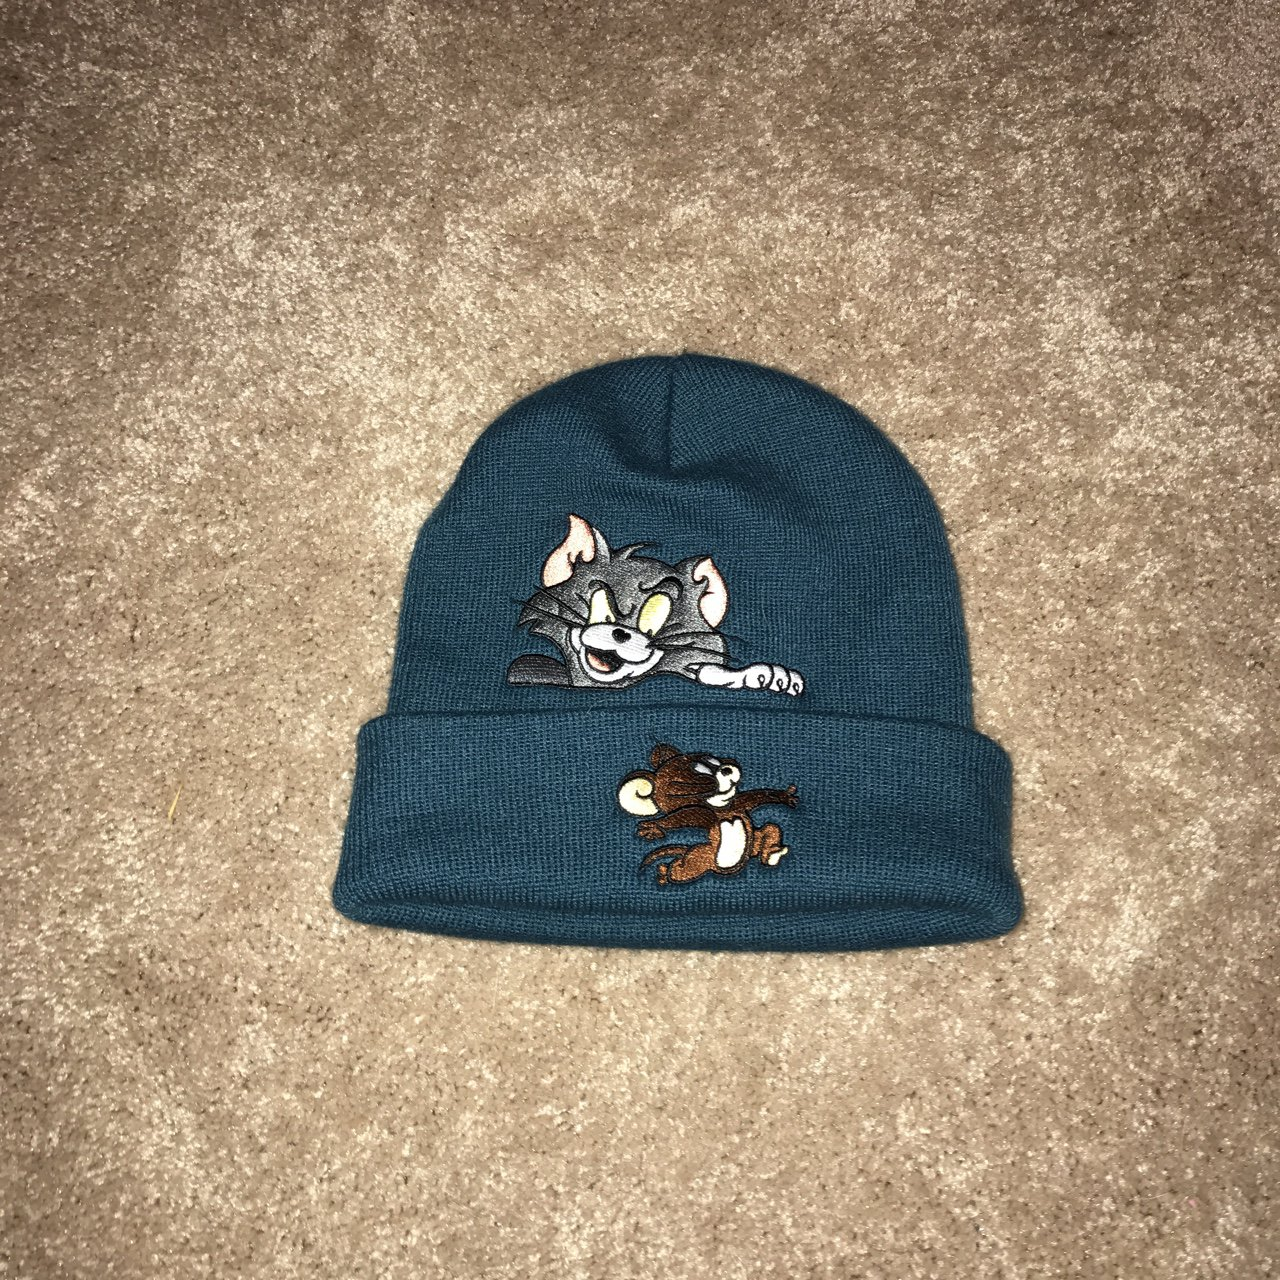 641604b5134 Supreme tom and jerry beanie in teal brand new never worn to depop jpg  1280x1280 Tom